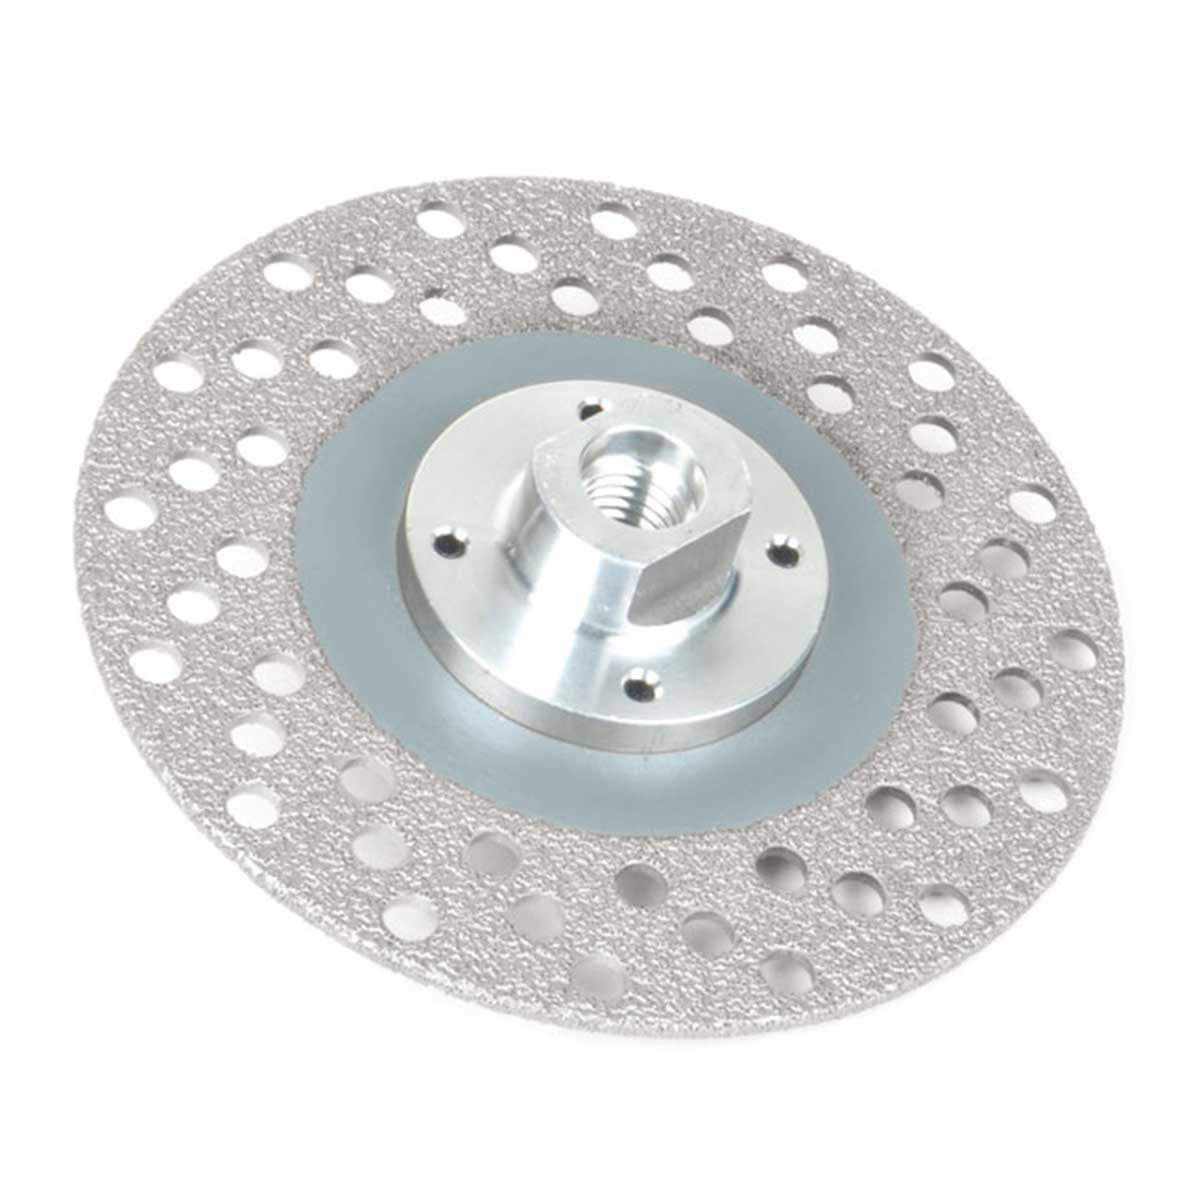 5 inch Diamond Cutting and Grinding Wheel